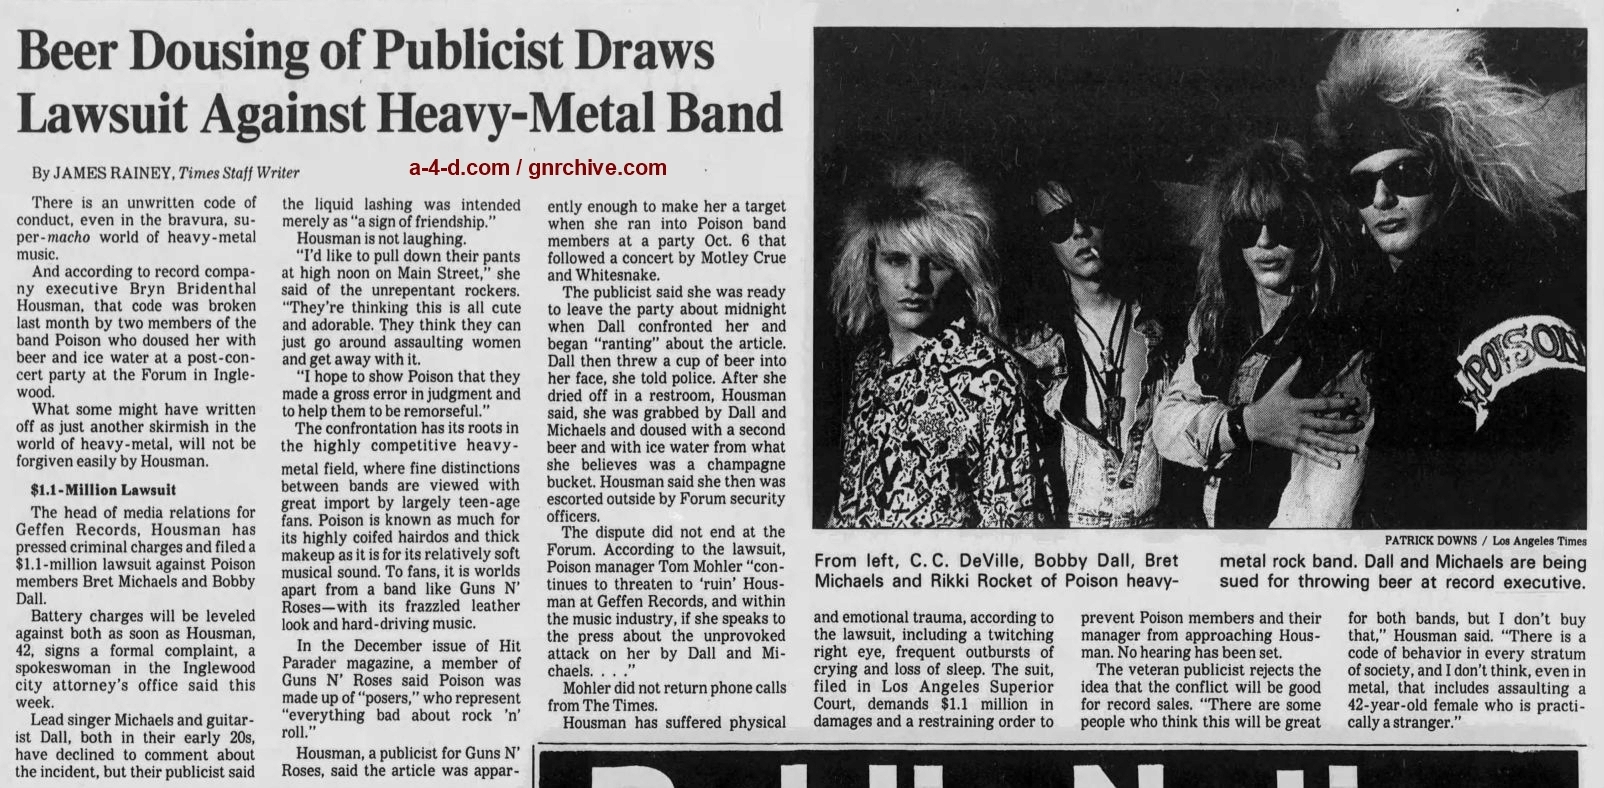 1987.11.06 - Los Angeles Times - Beer Dousing of Publicist Draws Lawsuit Against Heavy-Metal Band 1987_142